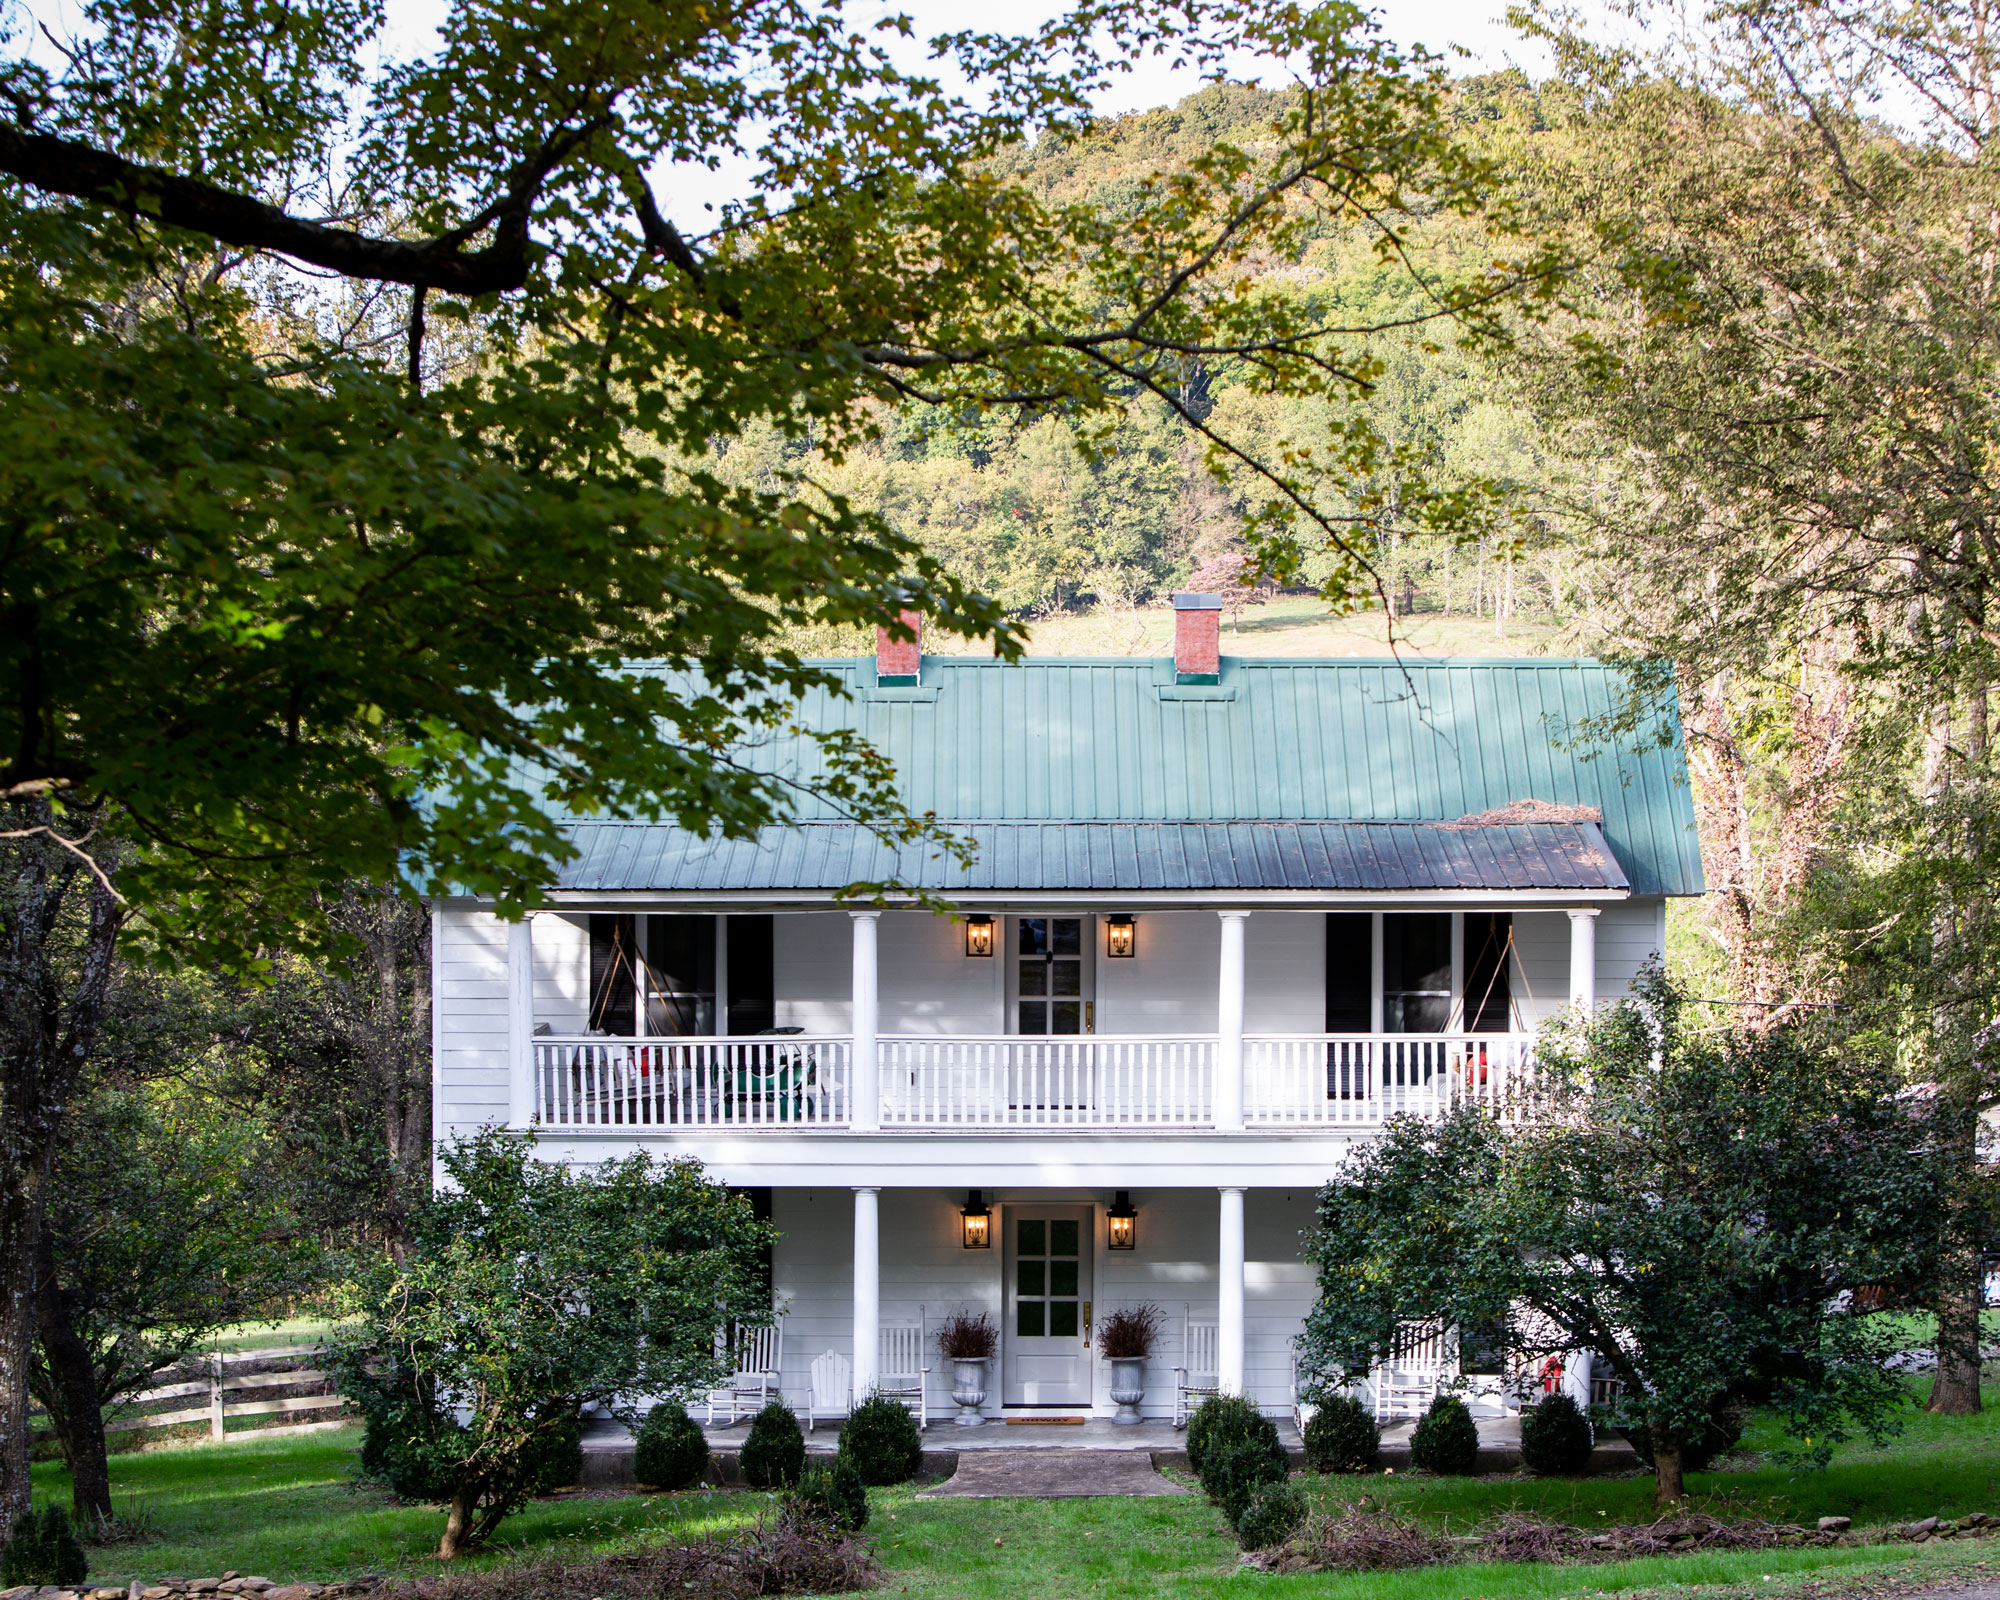 """Holly bought Fox Country Farmhouse off Craigslist. The renovations took about a year and three months. """"It was really challenging,"""" she says, """"but I could see the vision that first time I went."""""""